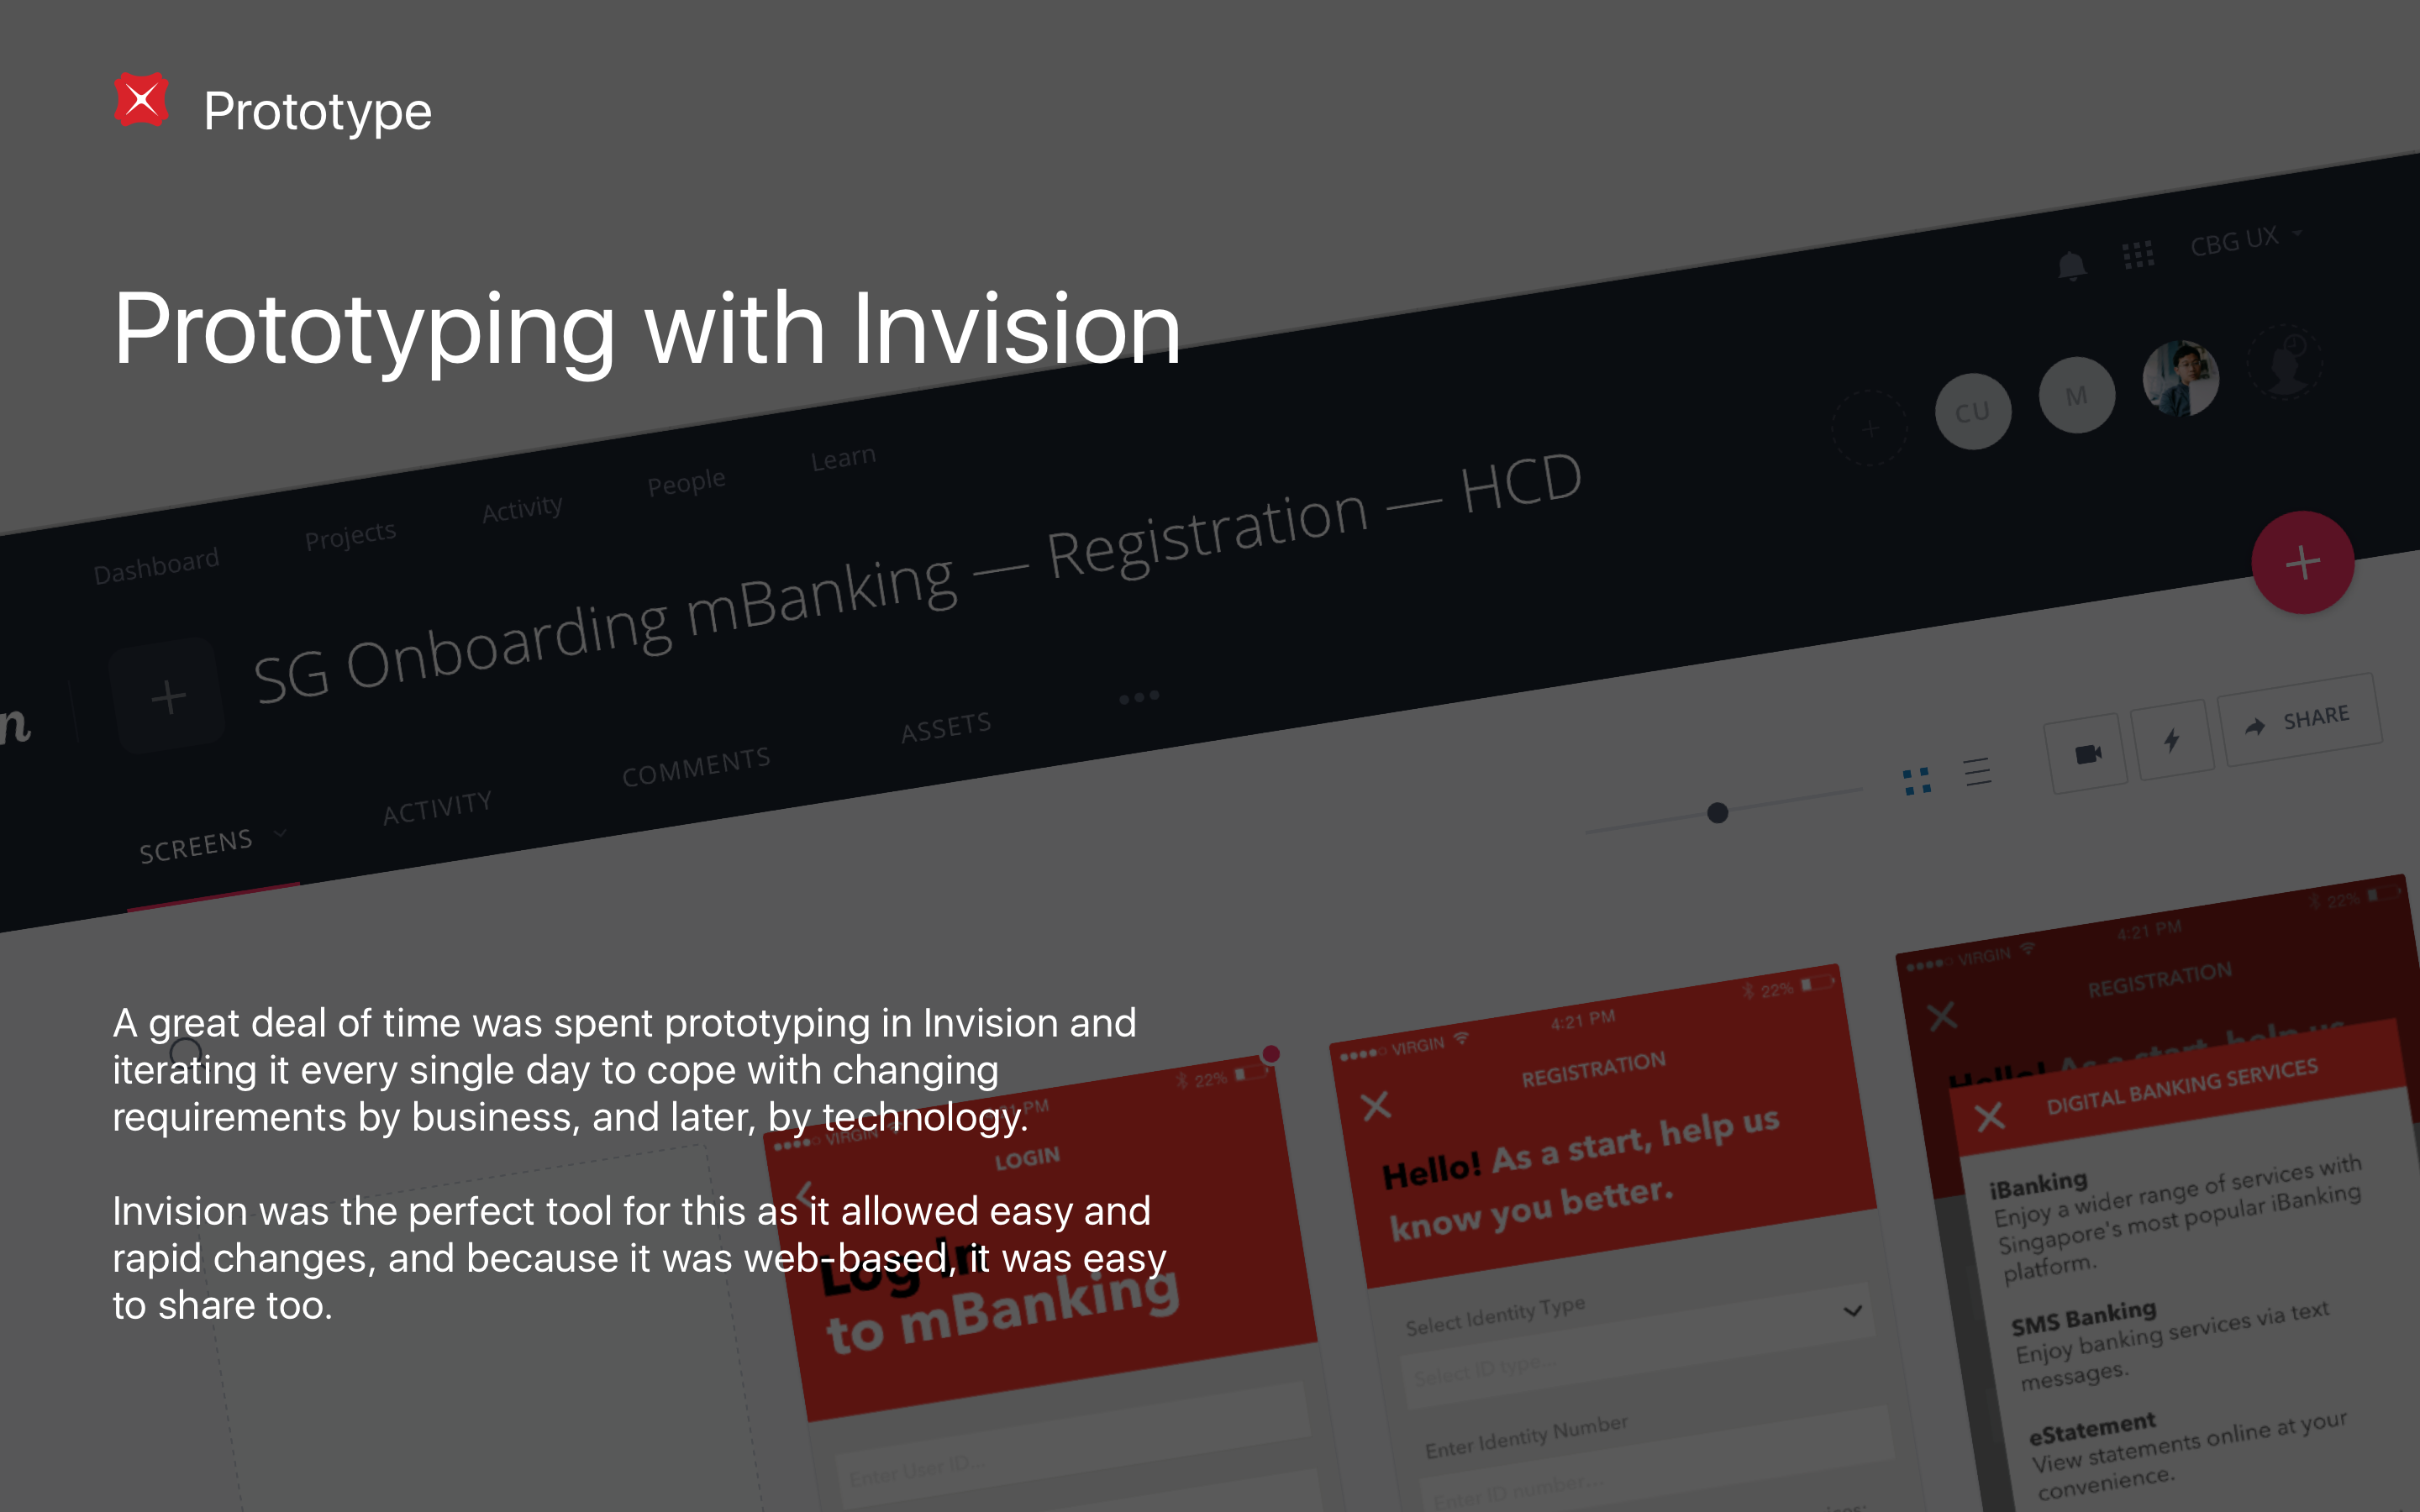 Prototyping with Invision